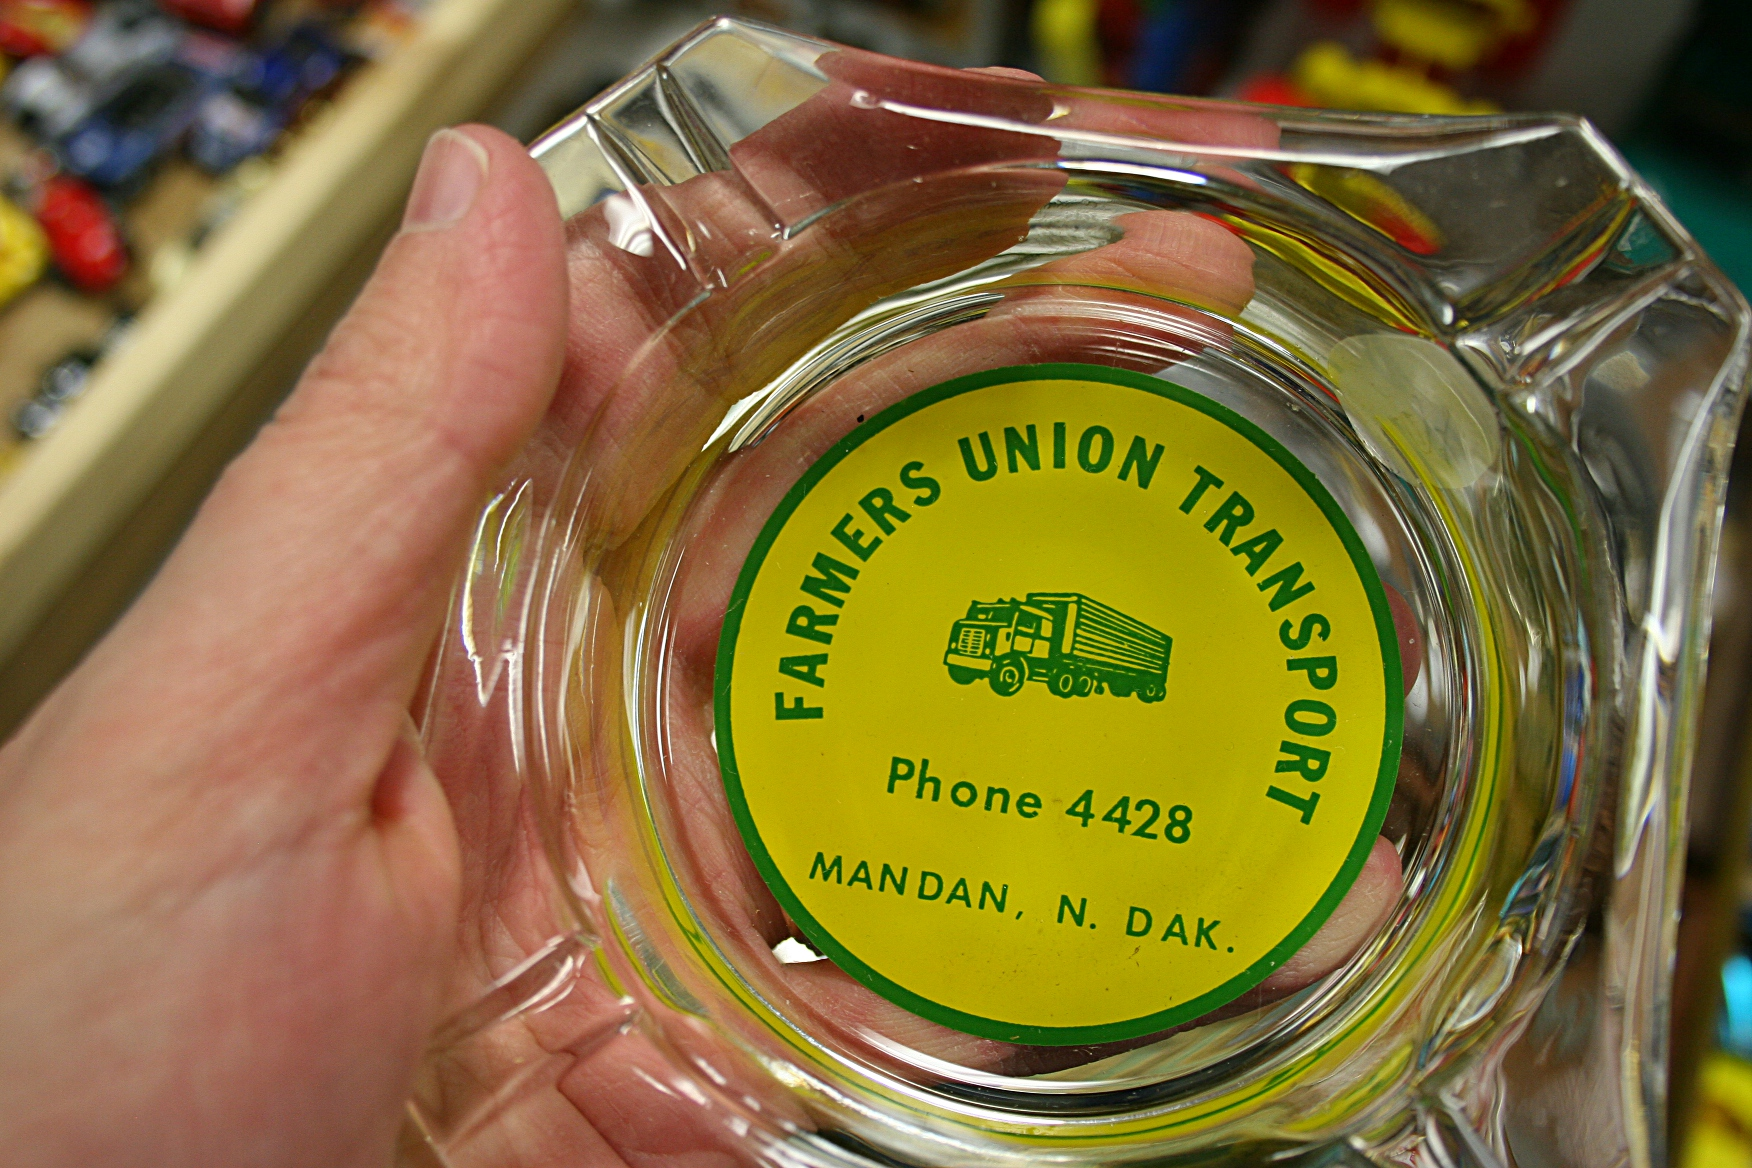 I don't smoke and don't like smoking. But I sure do I like vintage ash trays like this one from my husband's birthplace.